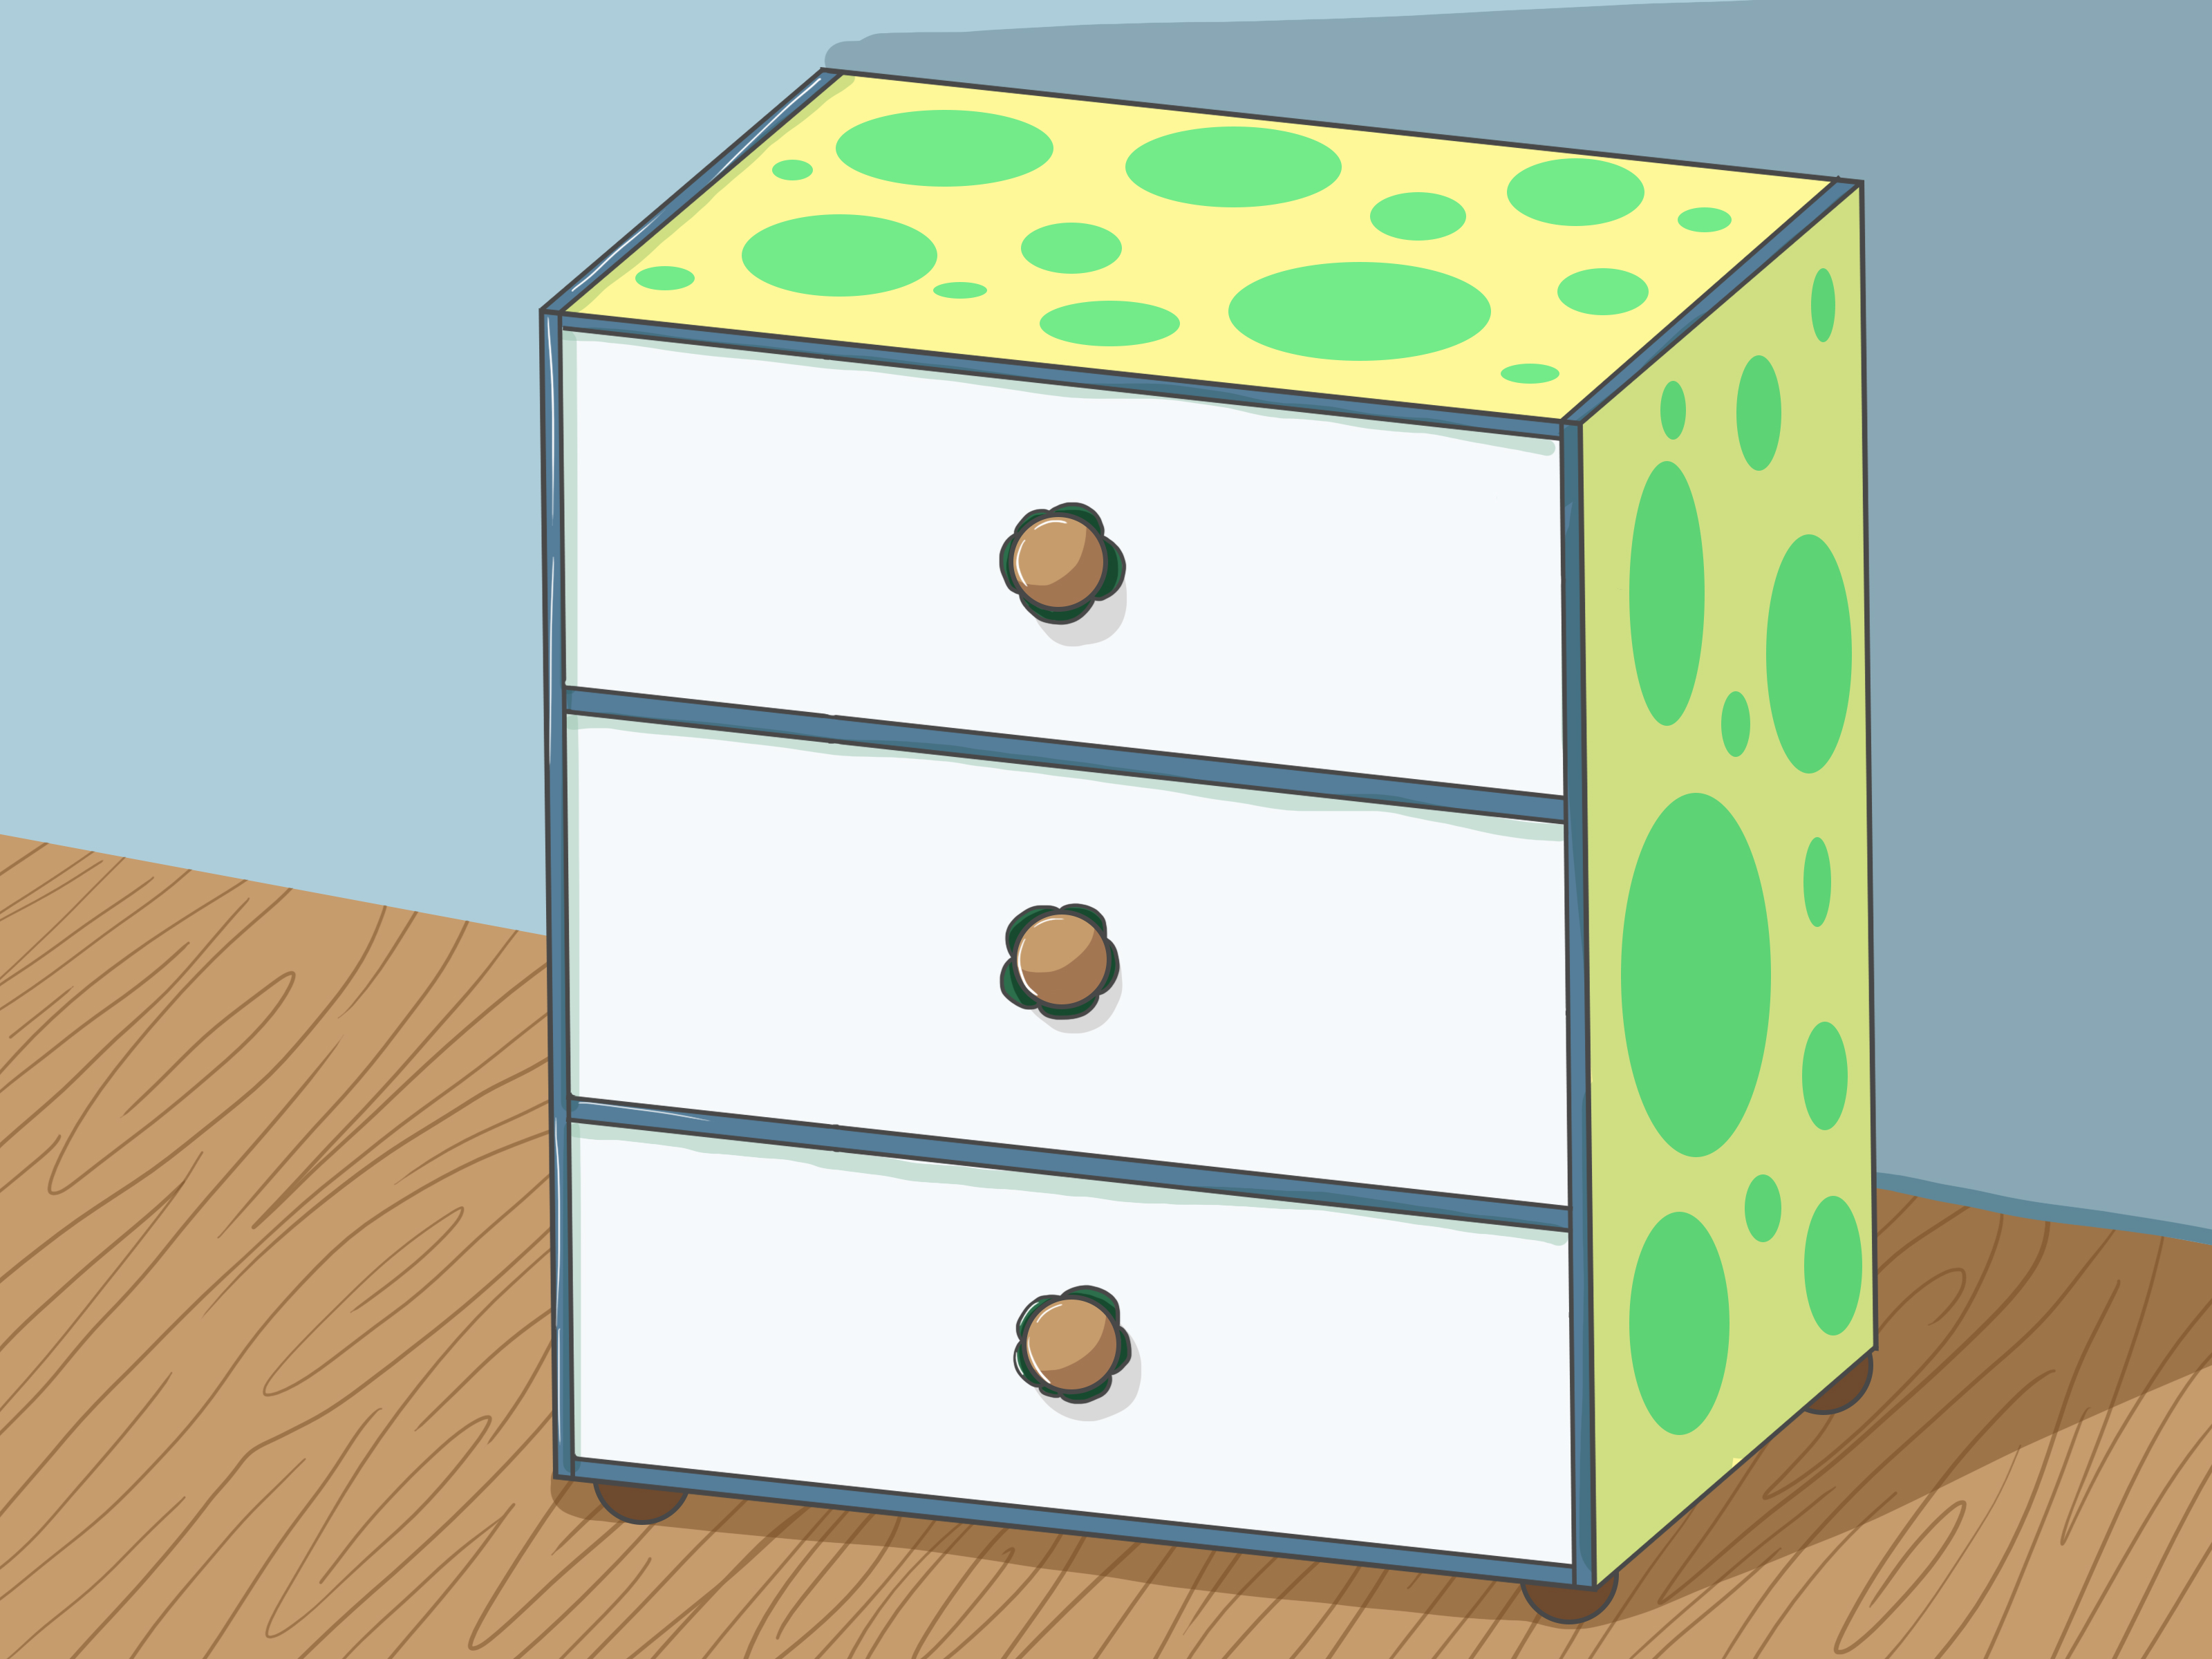 How To Make A Mini Desk Organizer With Pictures Wikihow